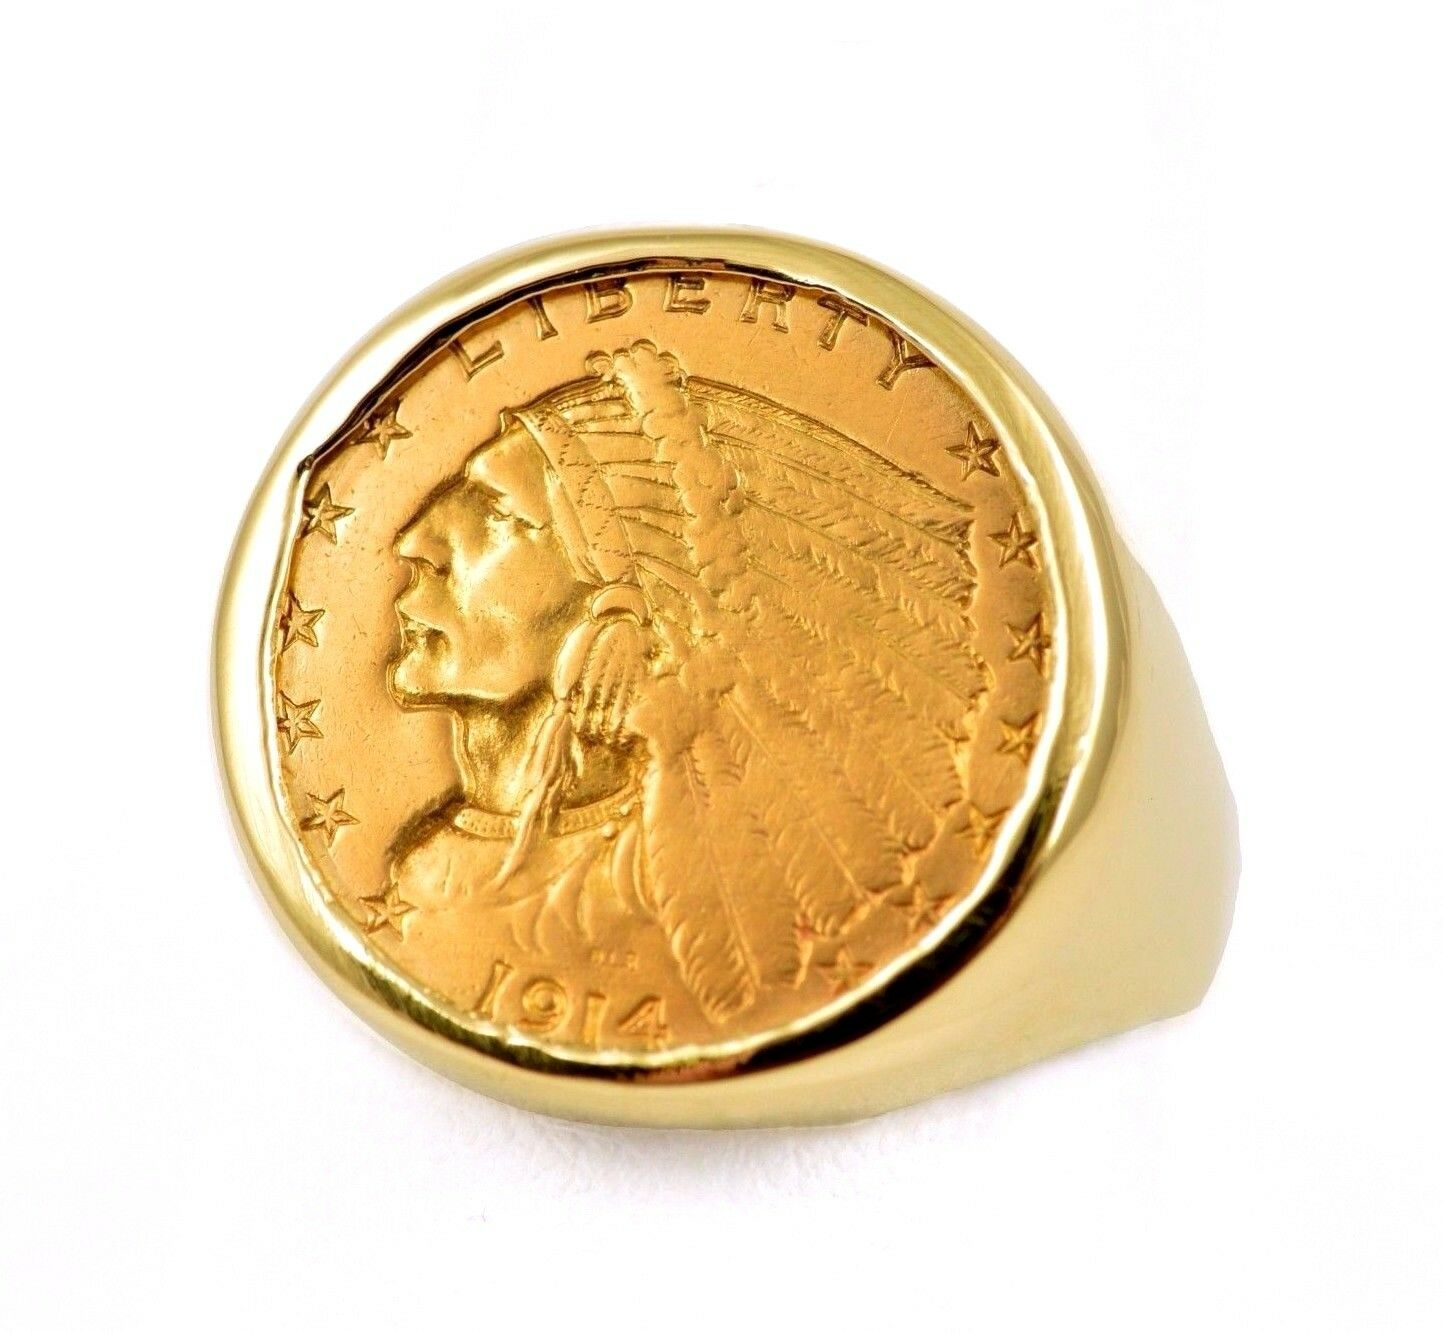 1914 D Us 2 5 Indian Head Quarter Eagle 900 Gold Coin In